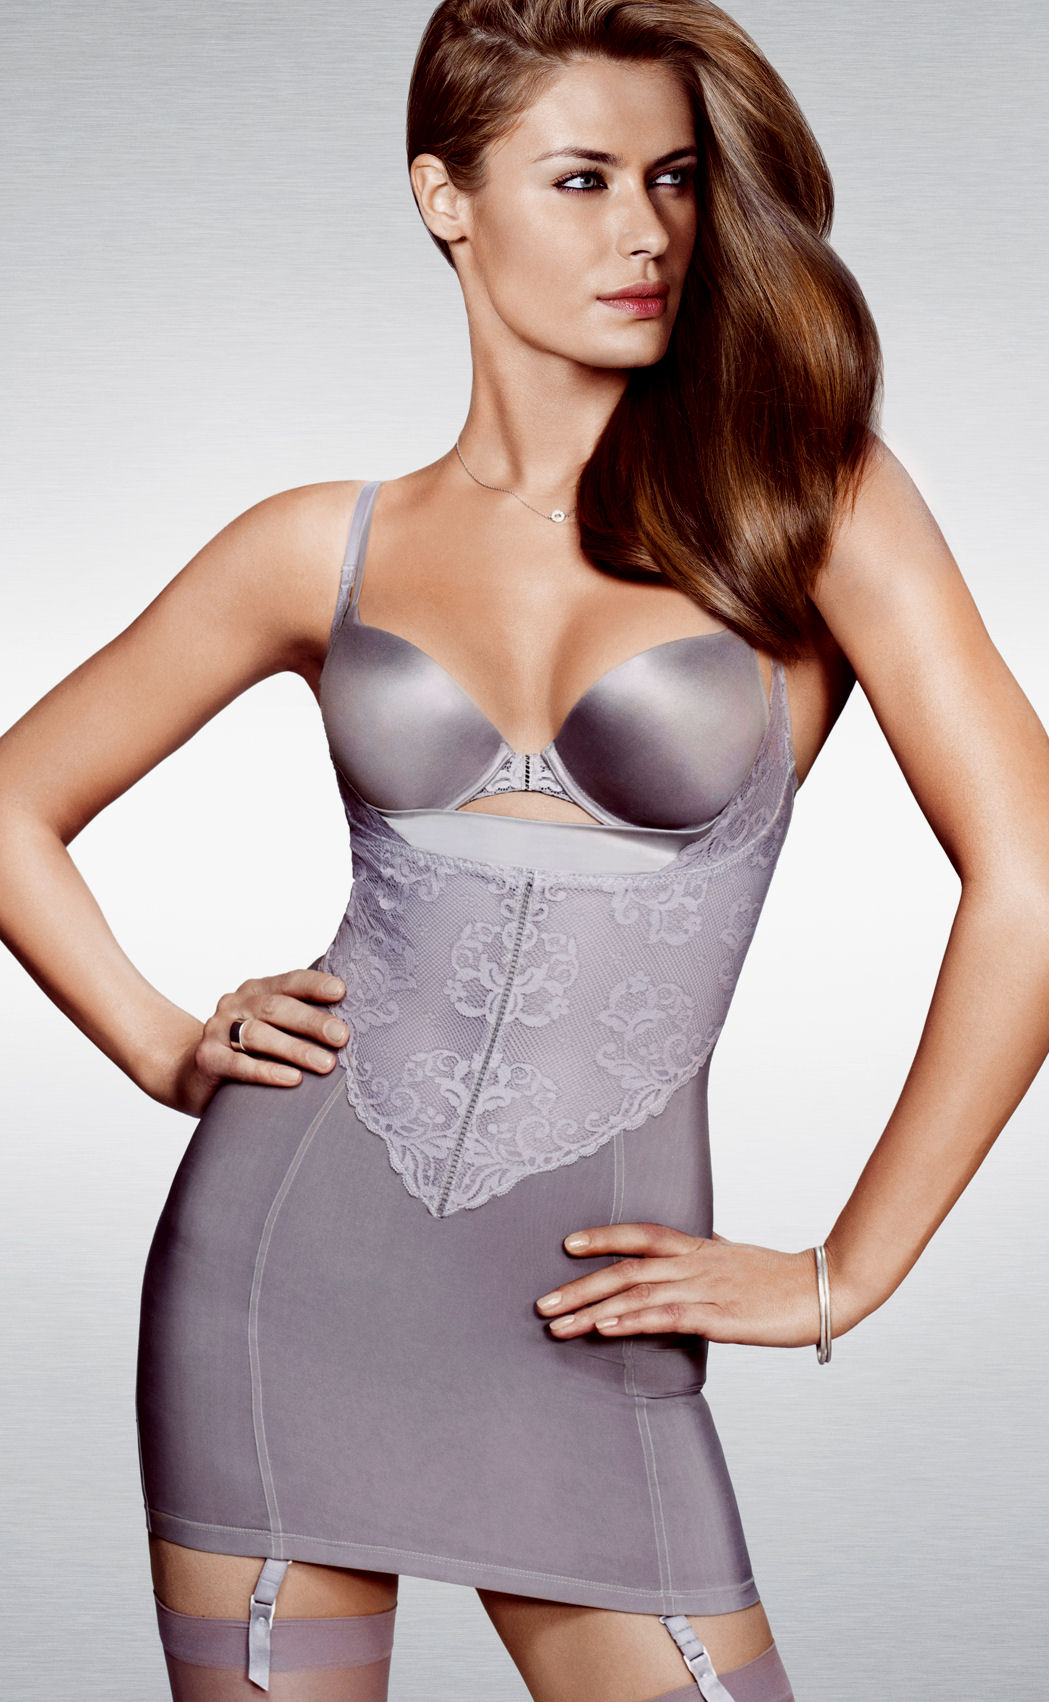 Shopping 16 Underrated Lingerie Brands That Aren't Victoria's Secret. You'll wish you knew about these sooner. The products in this post were updated in January